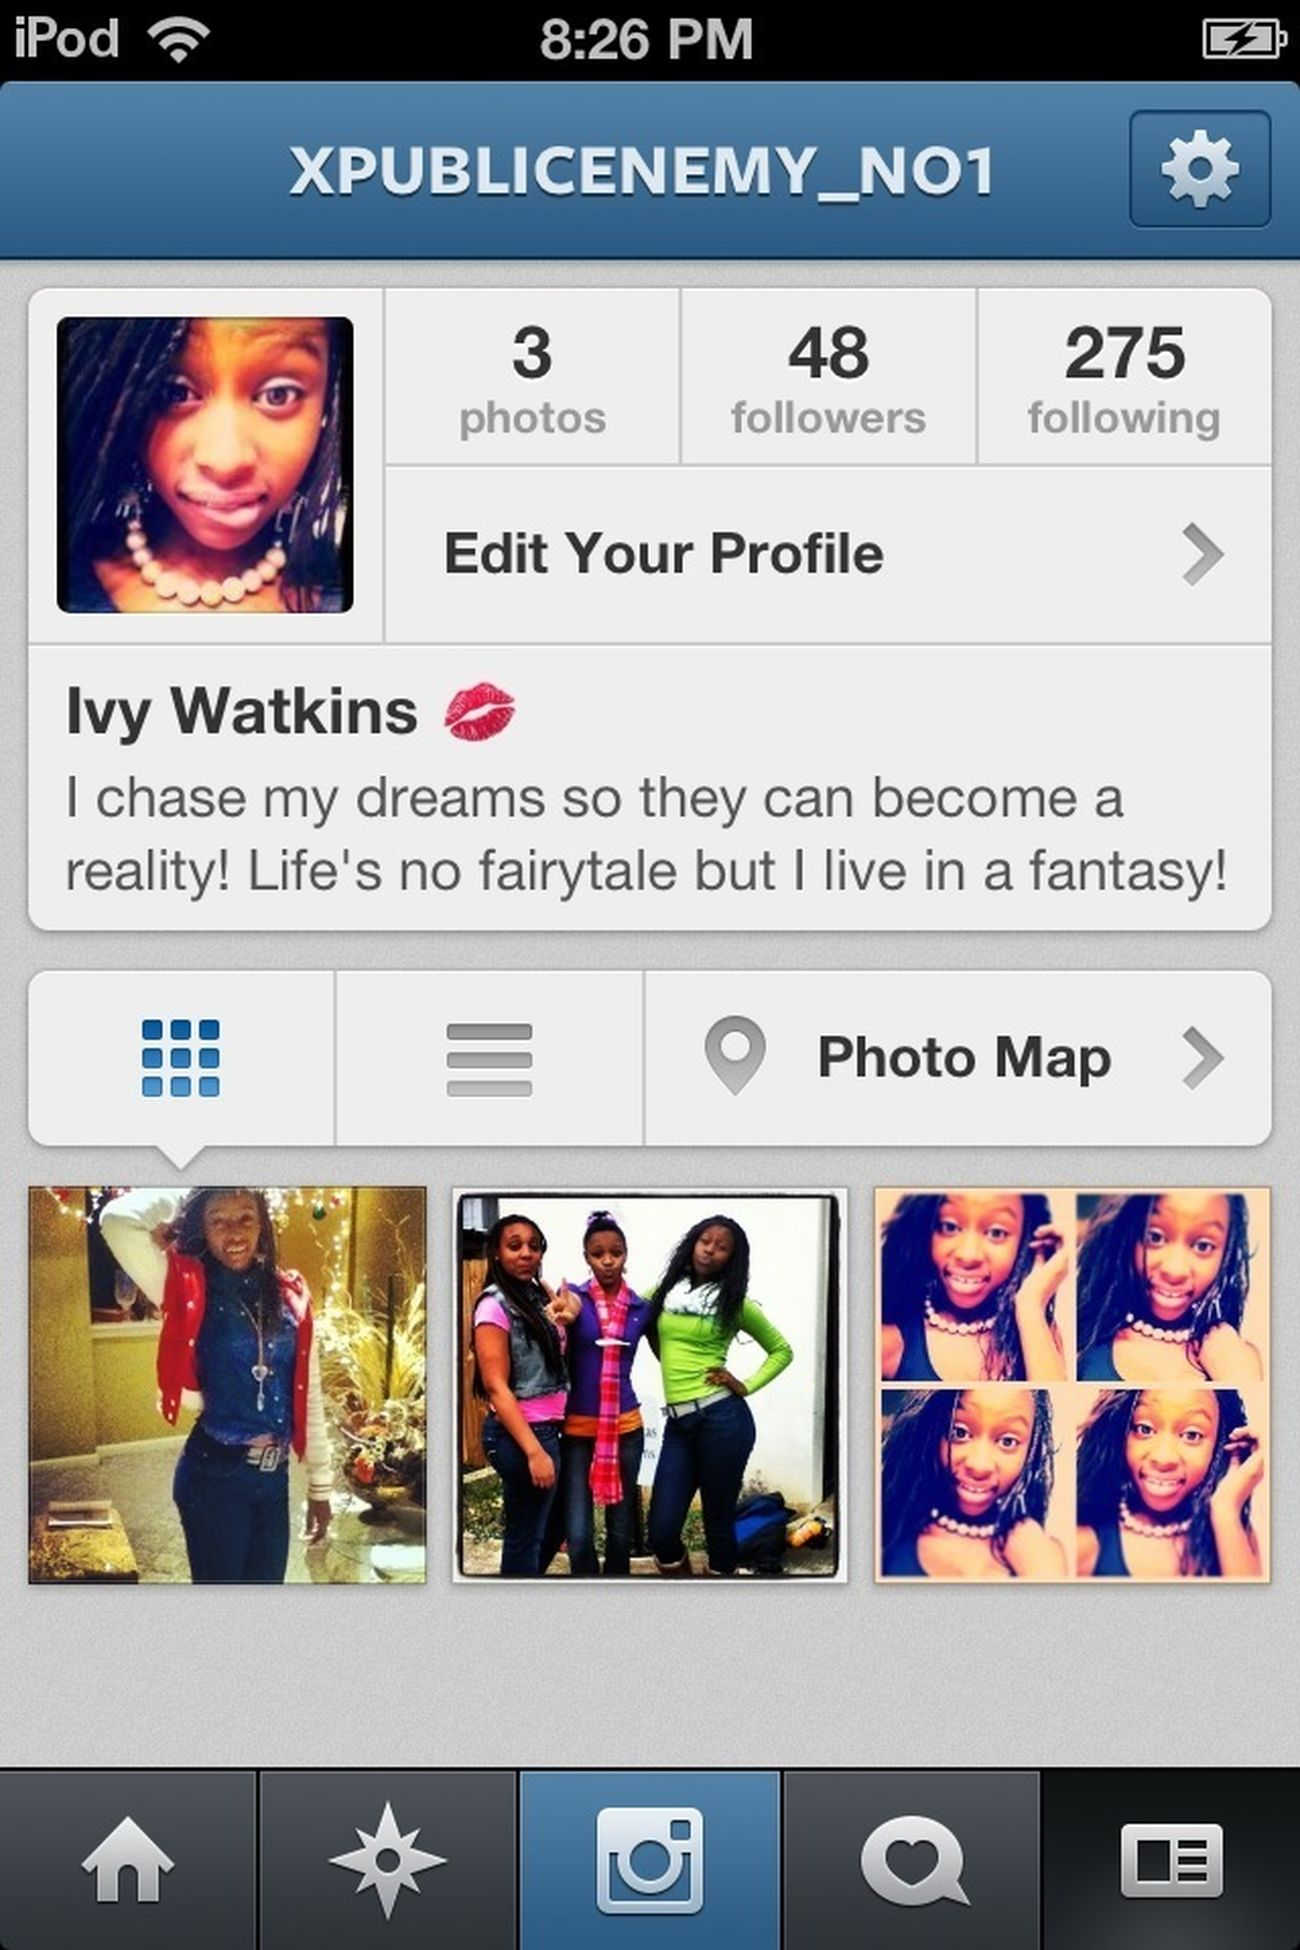 Follow Me On My New IG @xpublicenemy_no1